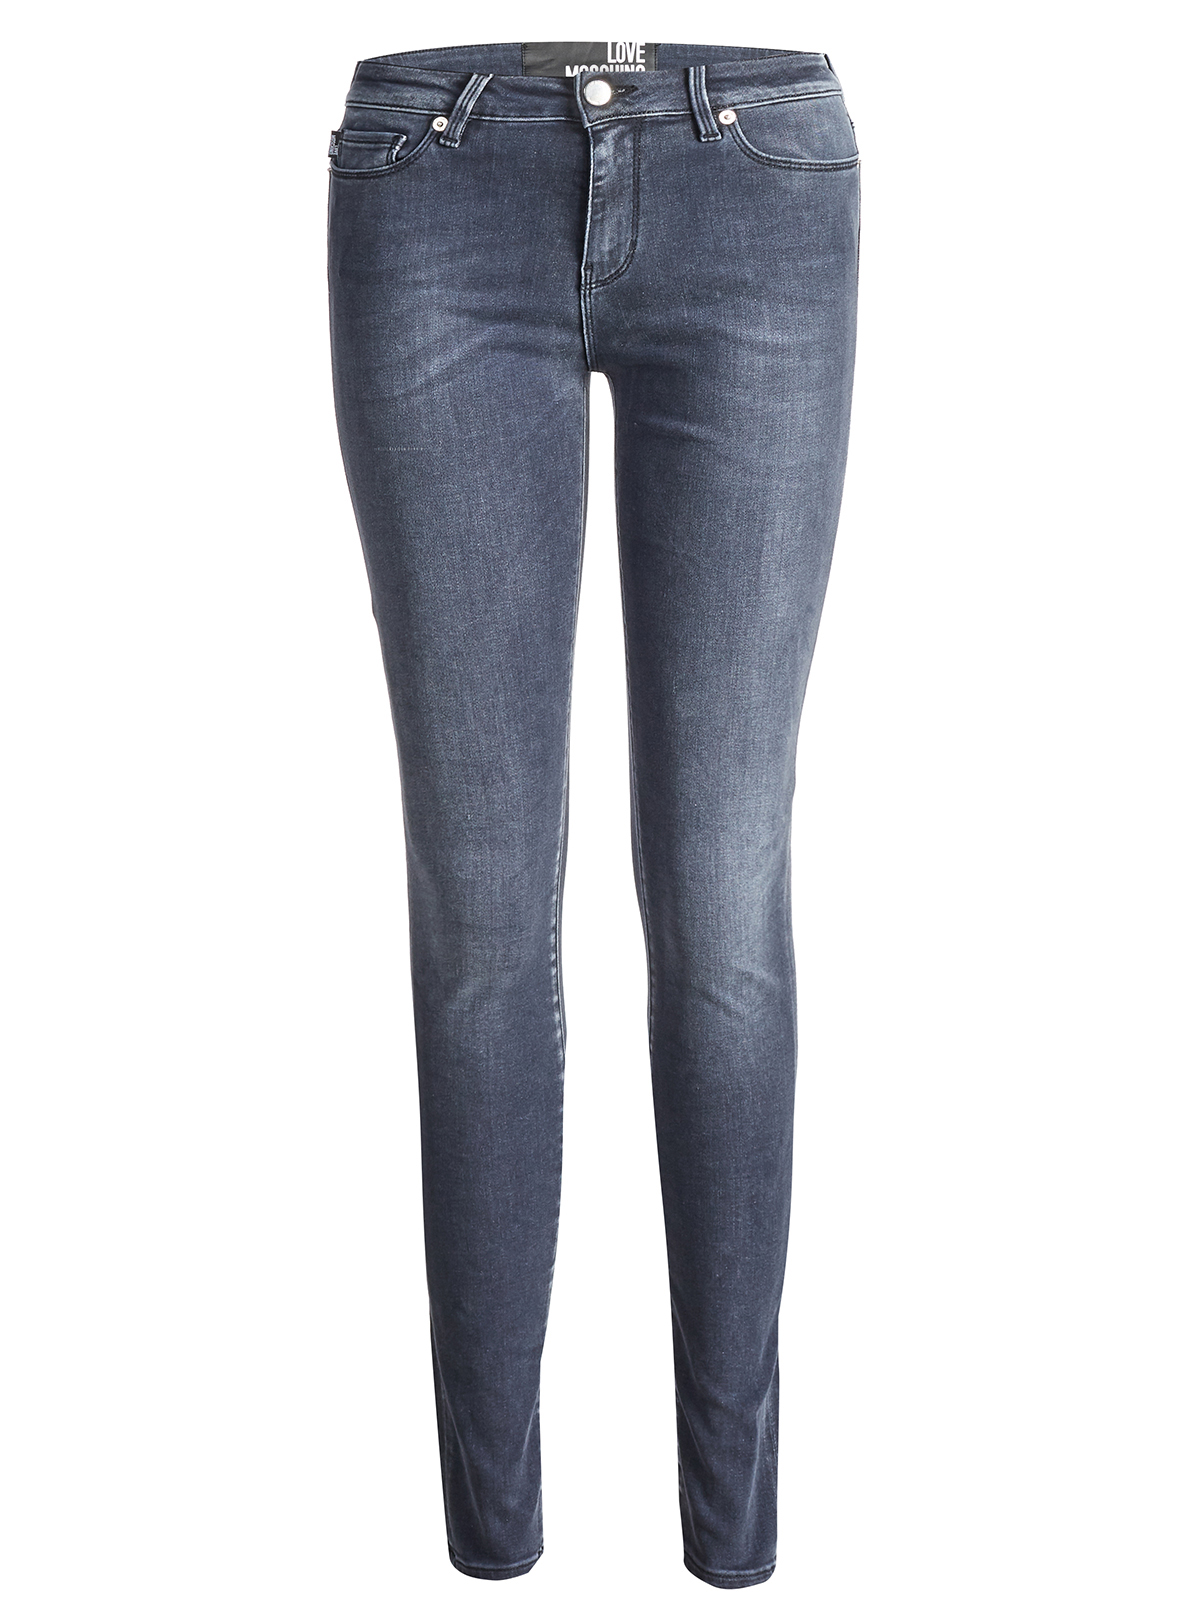 Love Moschino Jeans Black Grey by Love Moschino